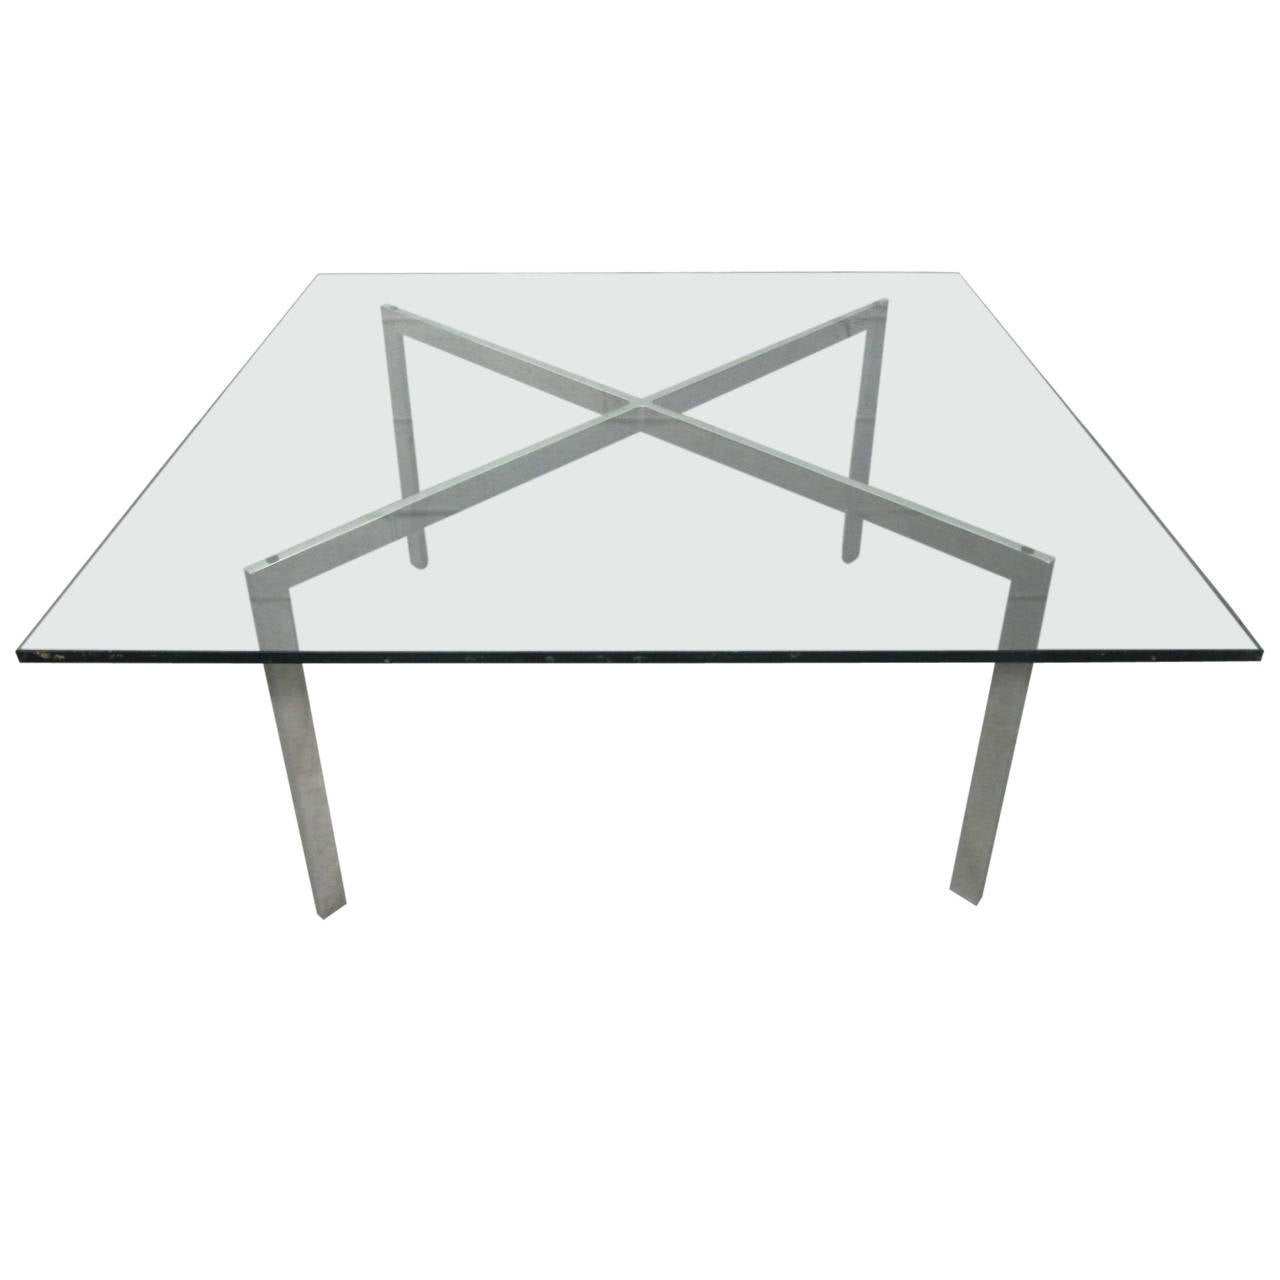 barcelona table base by mies van der rohe for knoll for. Black Bedroom Furniture Sets. Home Design Ideas